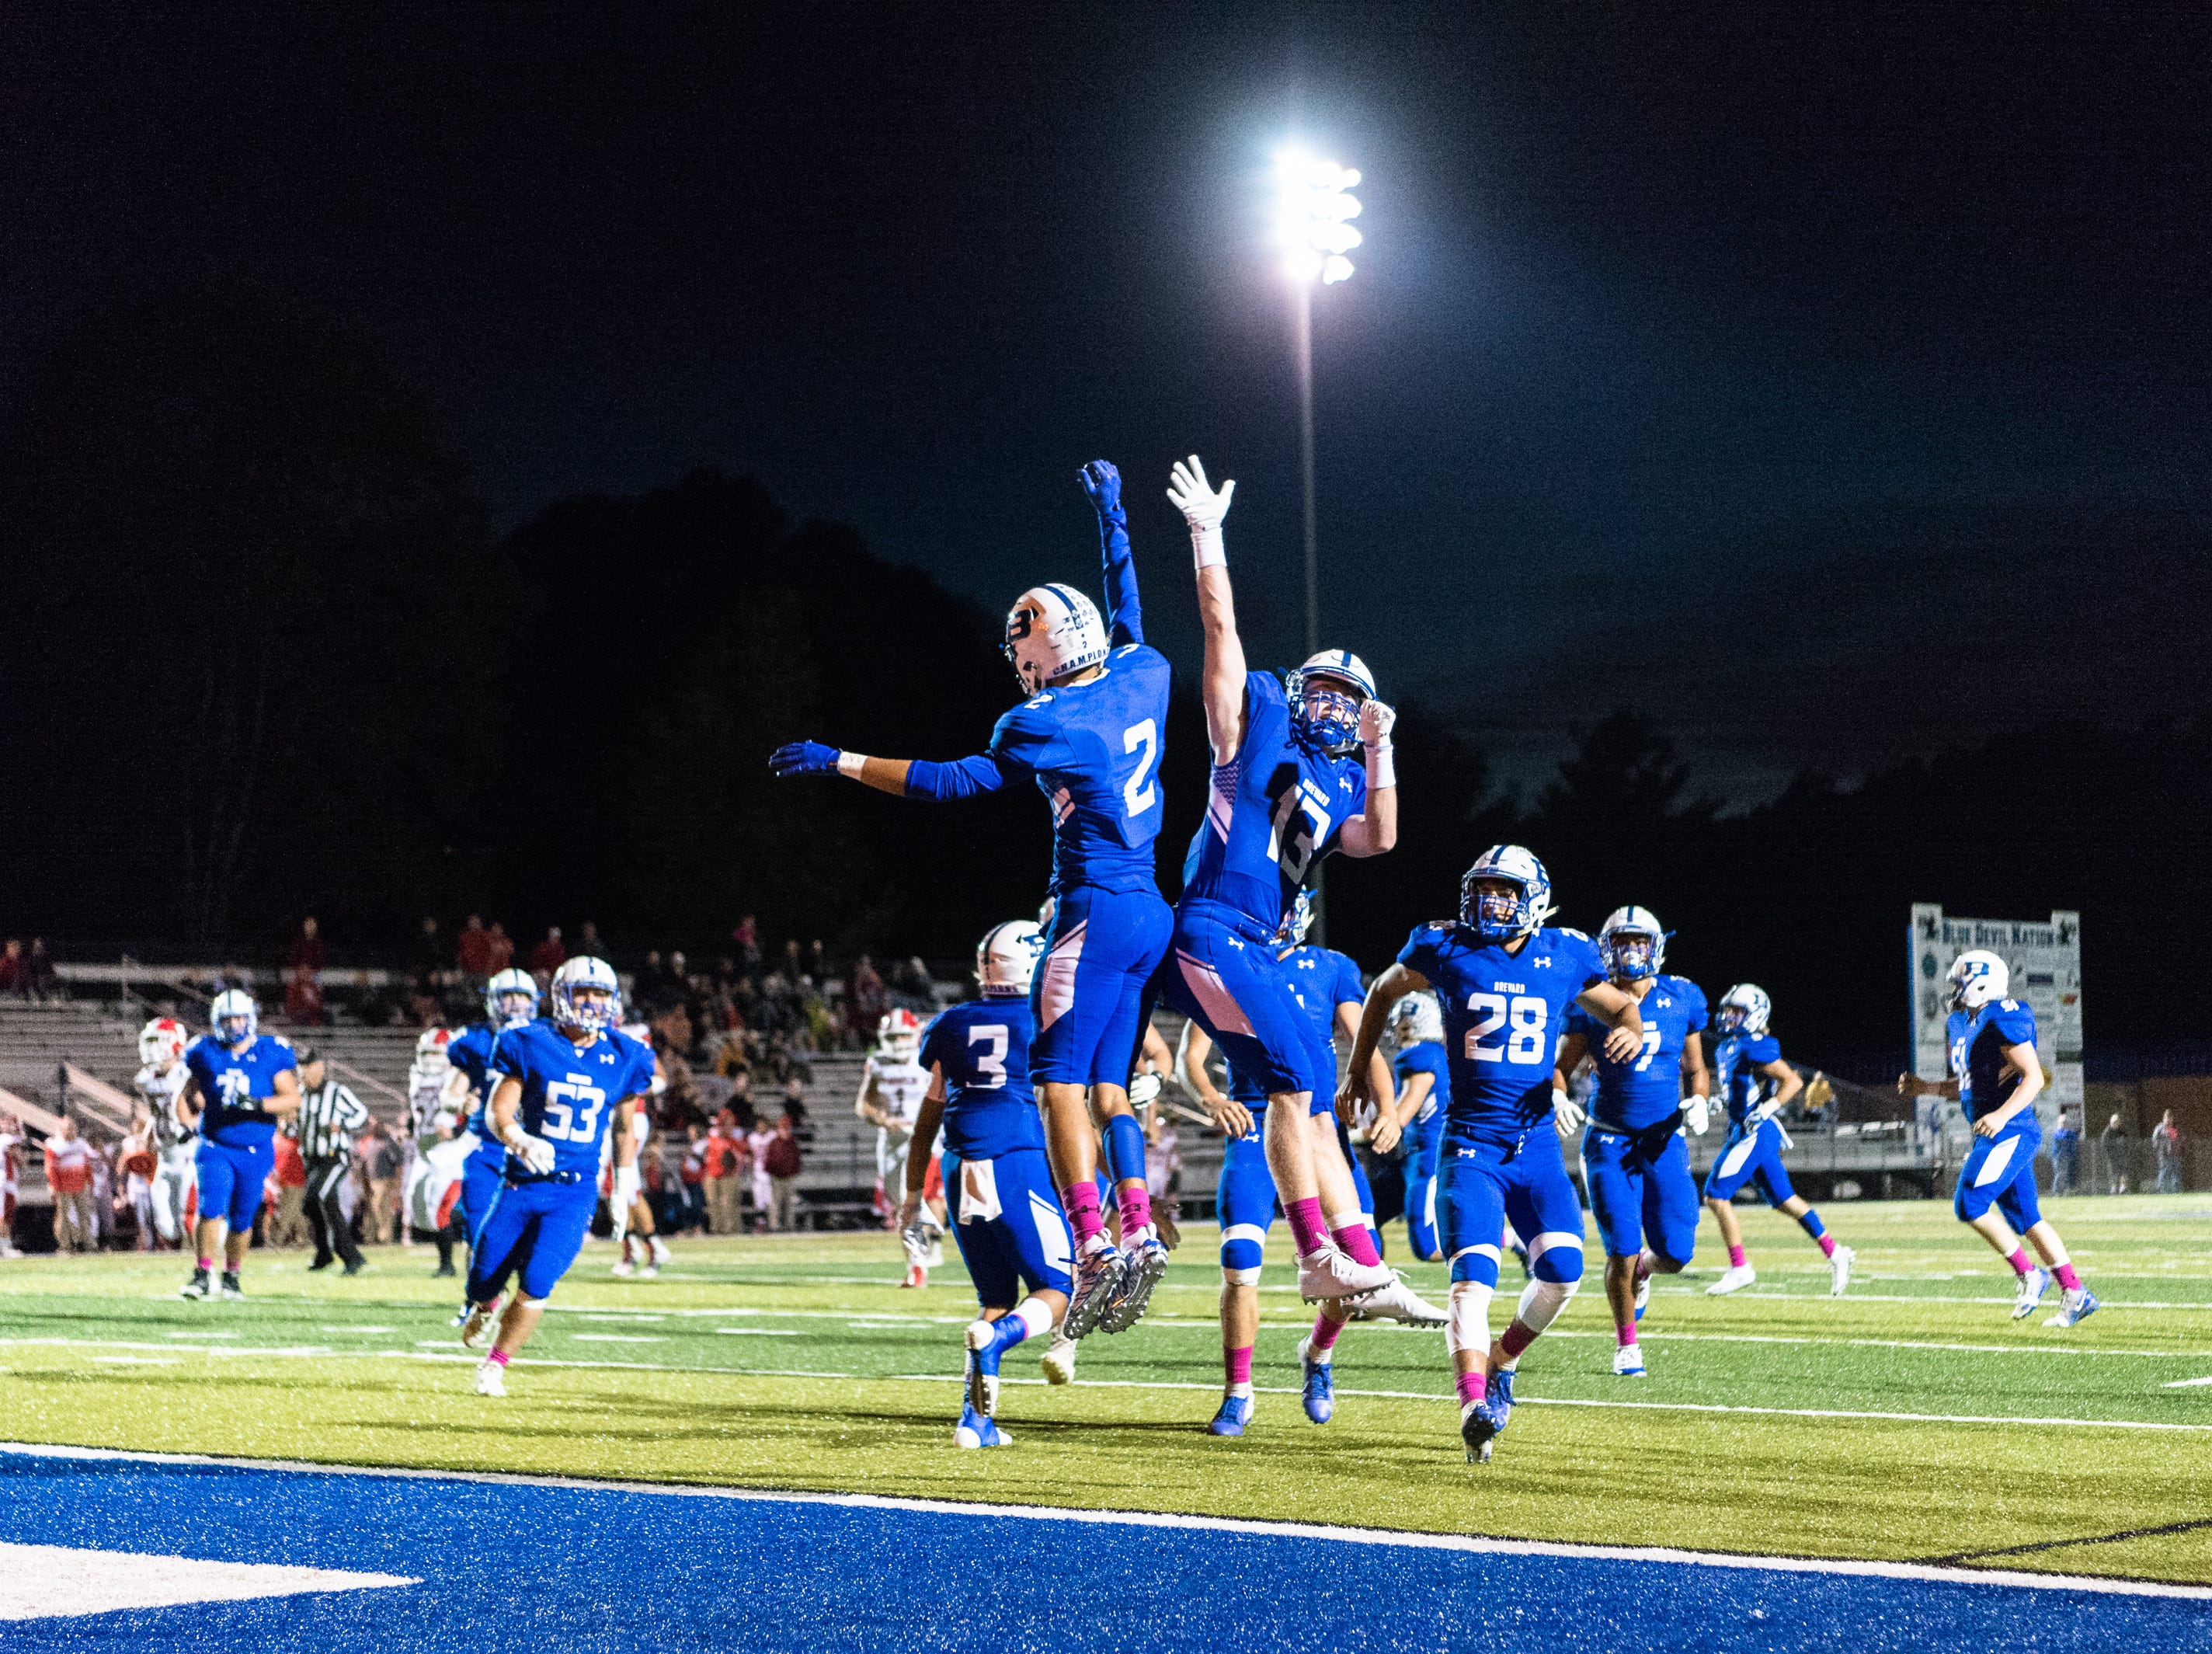 Brevard's Breylan Owens and Luke Ellenberger celebrate a touchdown during their Friday night football game against Franklin, Oct. 12, 2018.